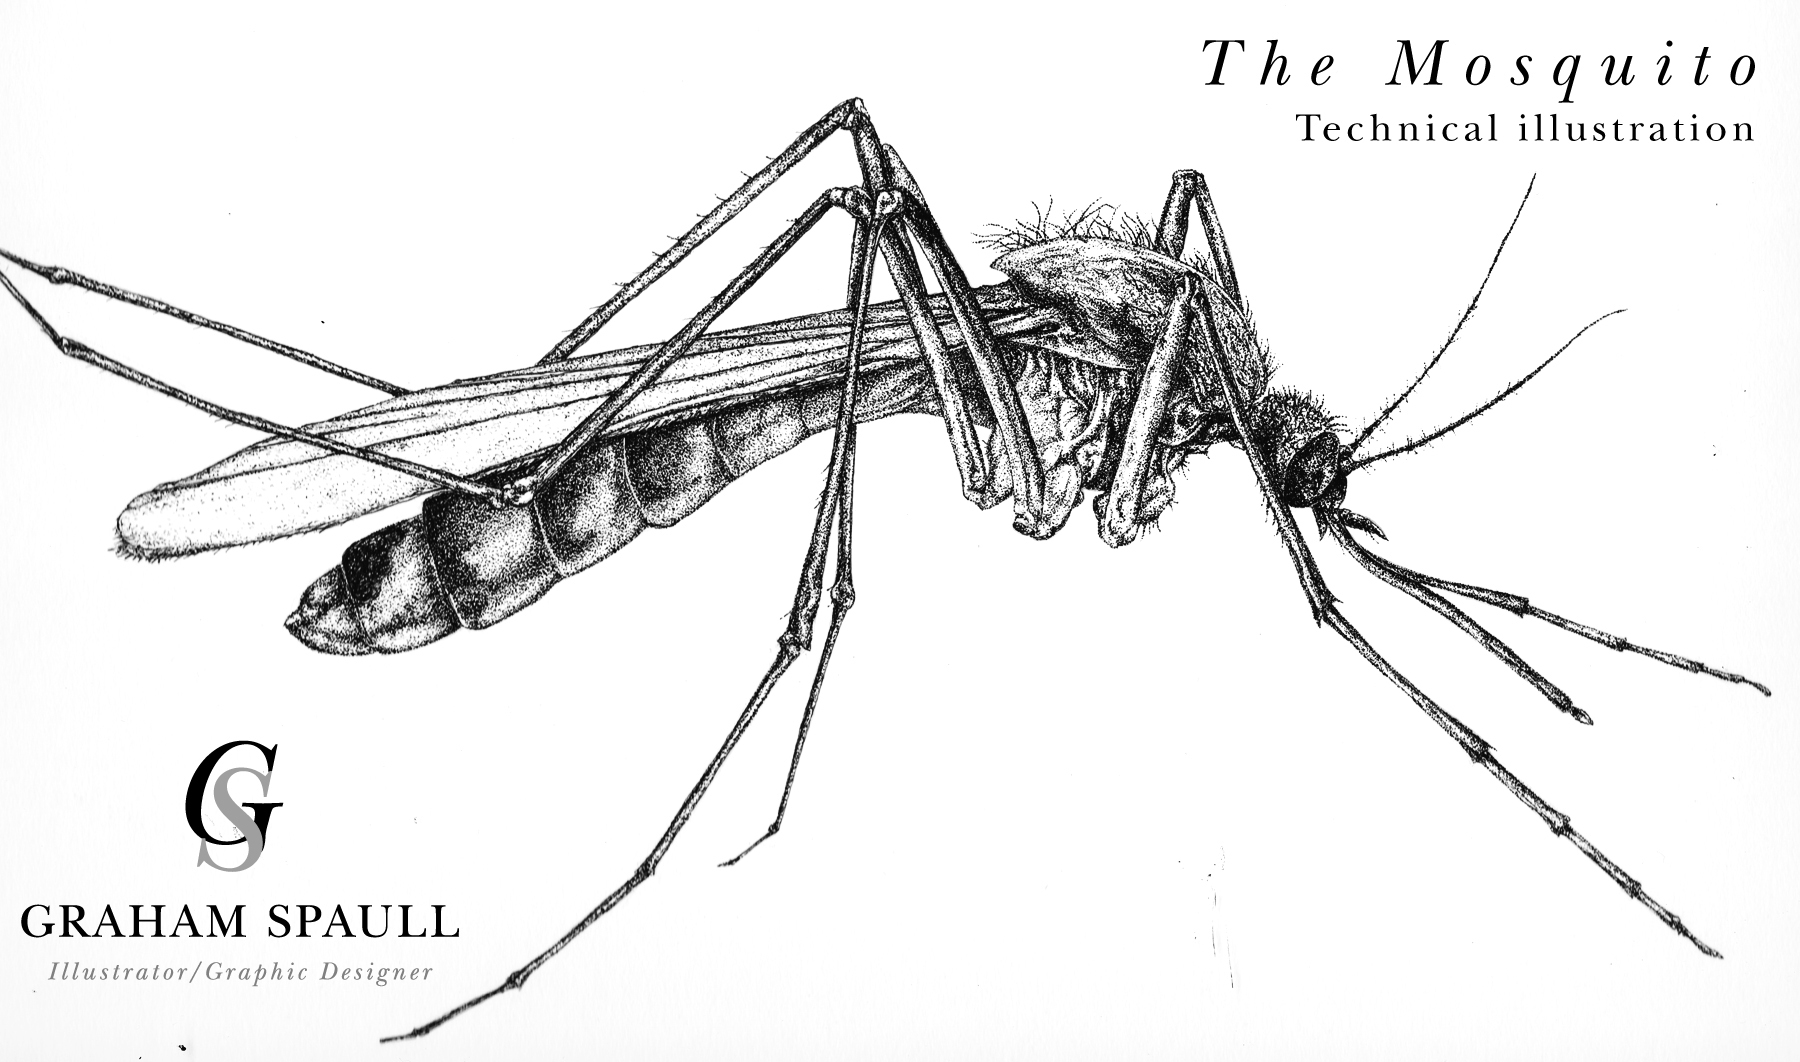 The mosquito (pointillism)